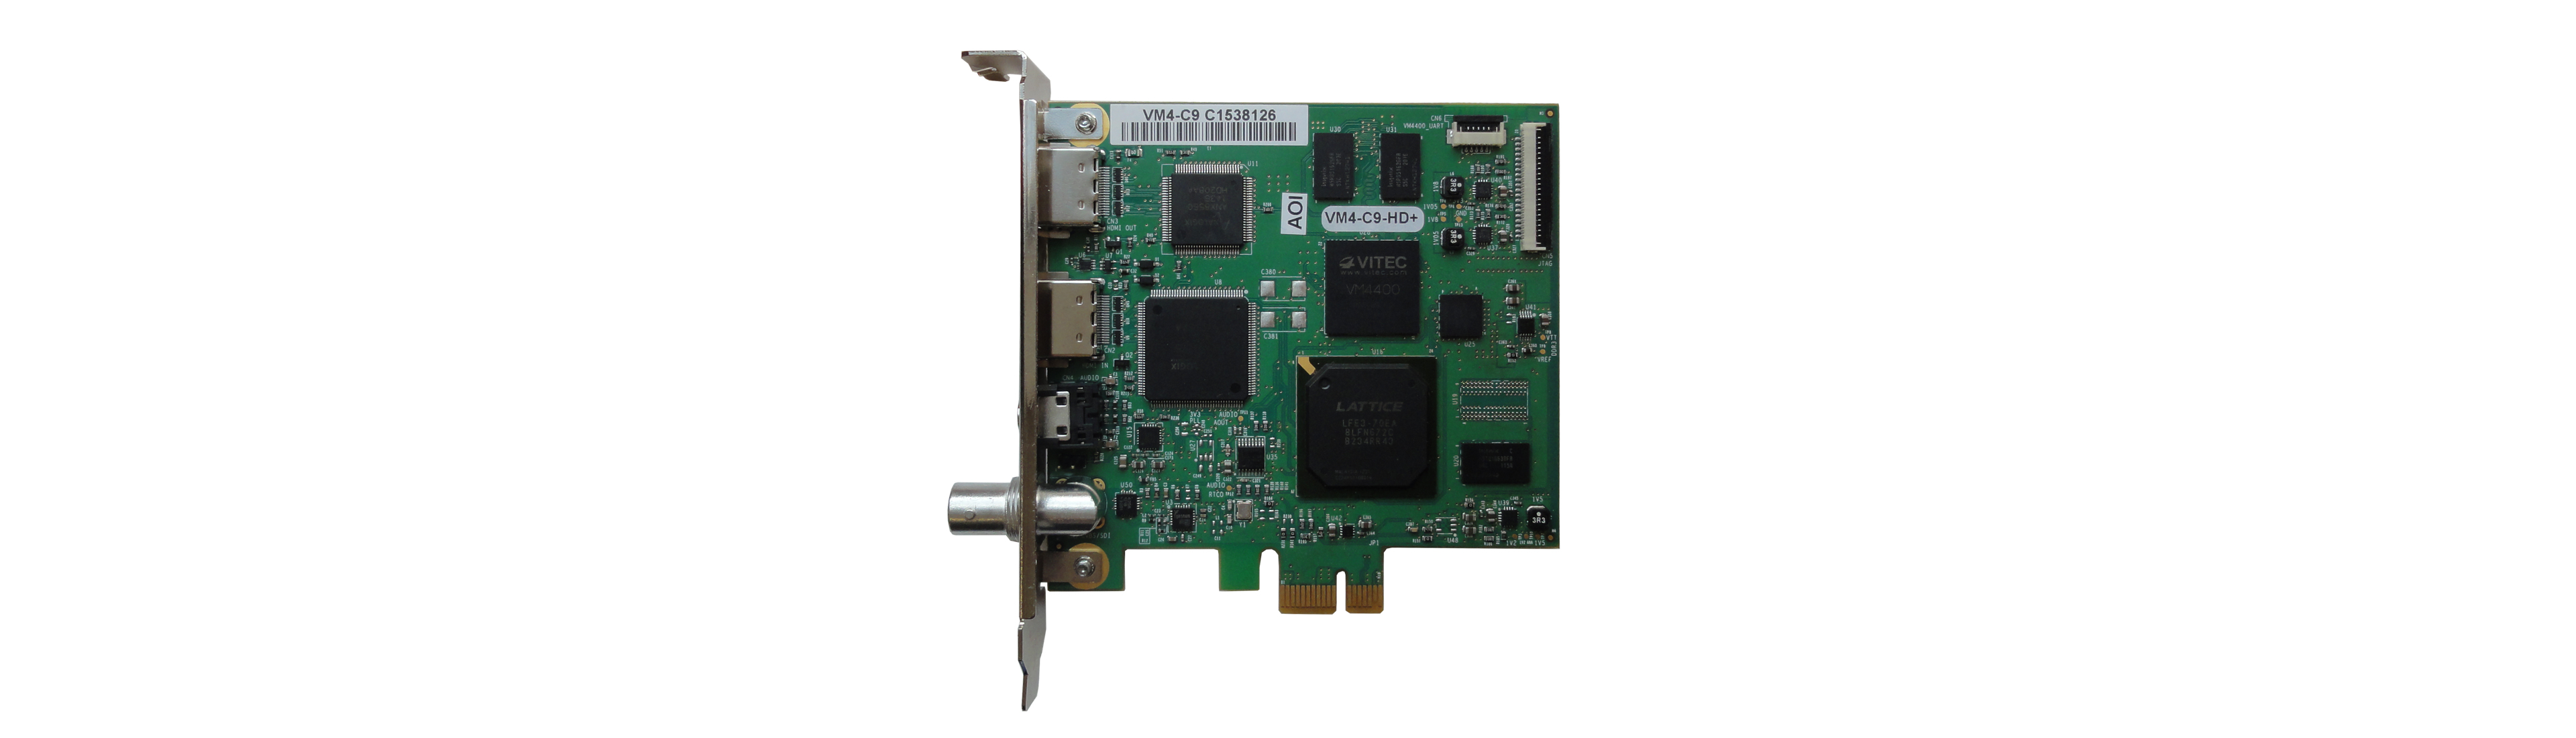 VITEC - VM4-C9 - Advanced H.264 Encoder